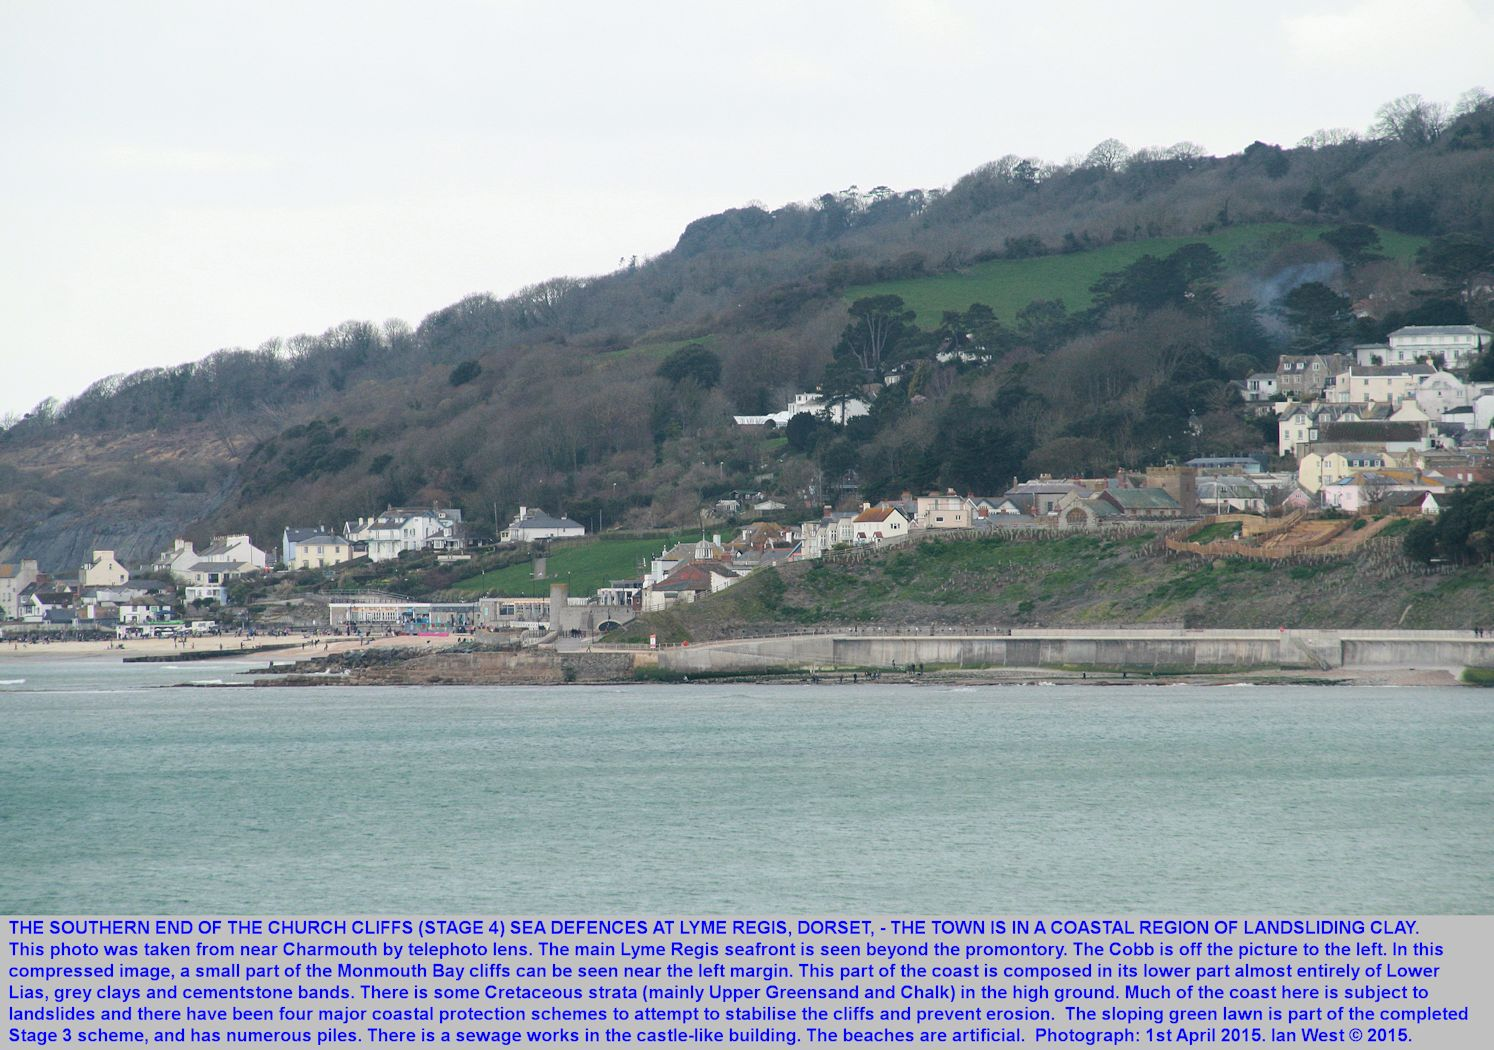 Telephoto view from near Charmouth of the southern part of the (2014-2015) sea wall and promenade at Lyme Regis, Dorset, April 2015